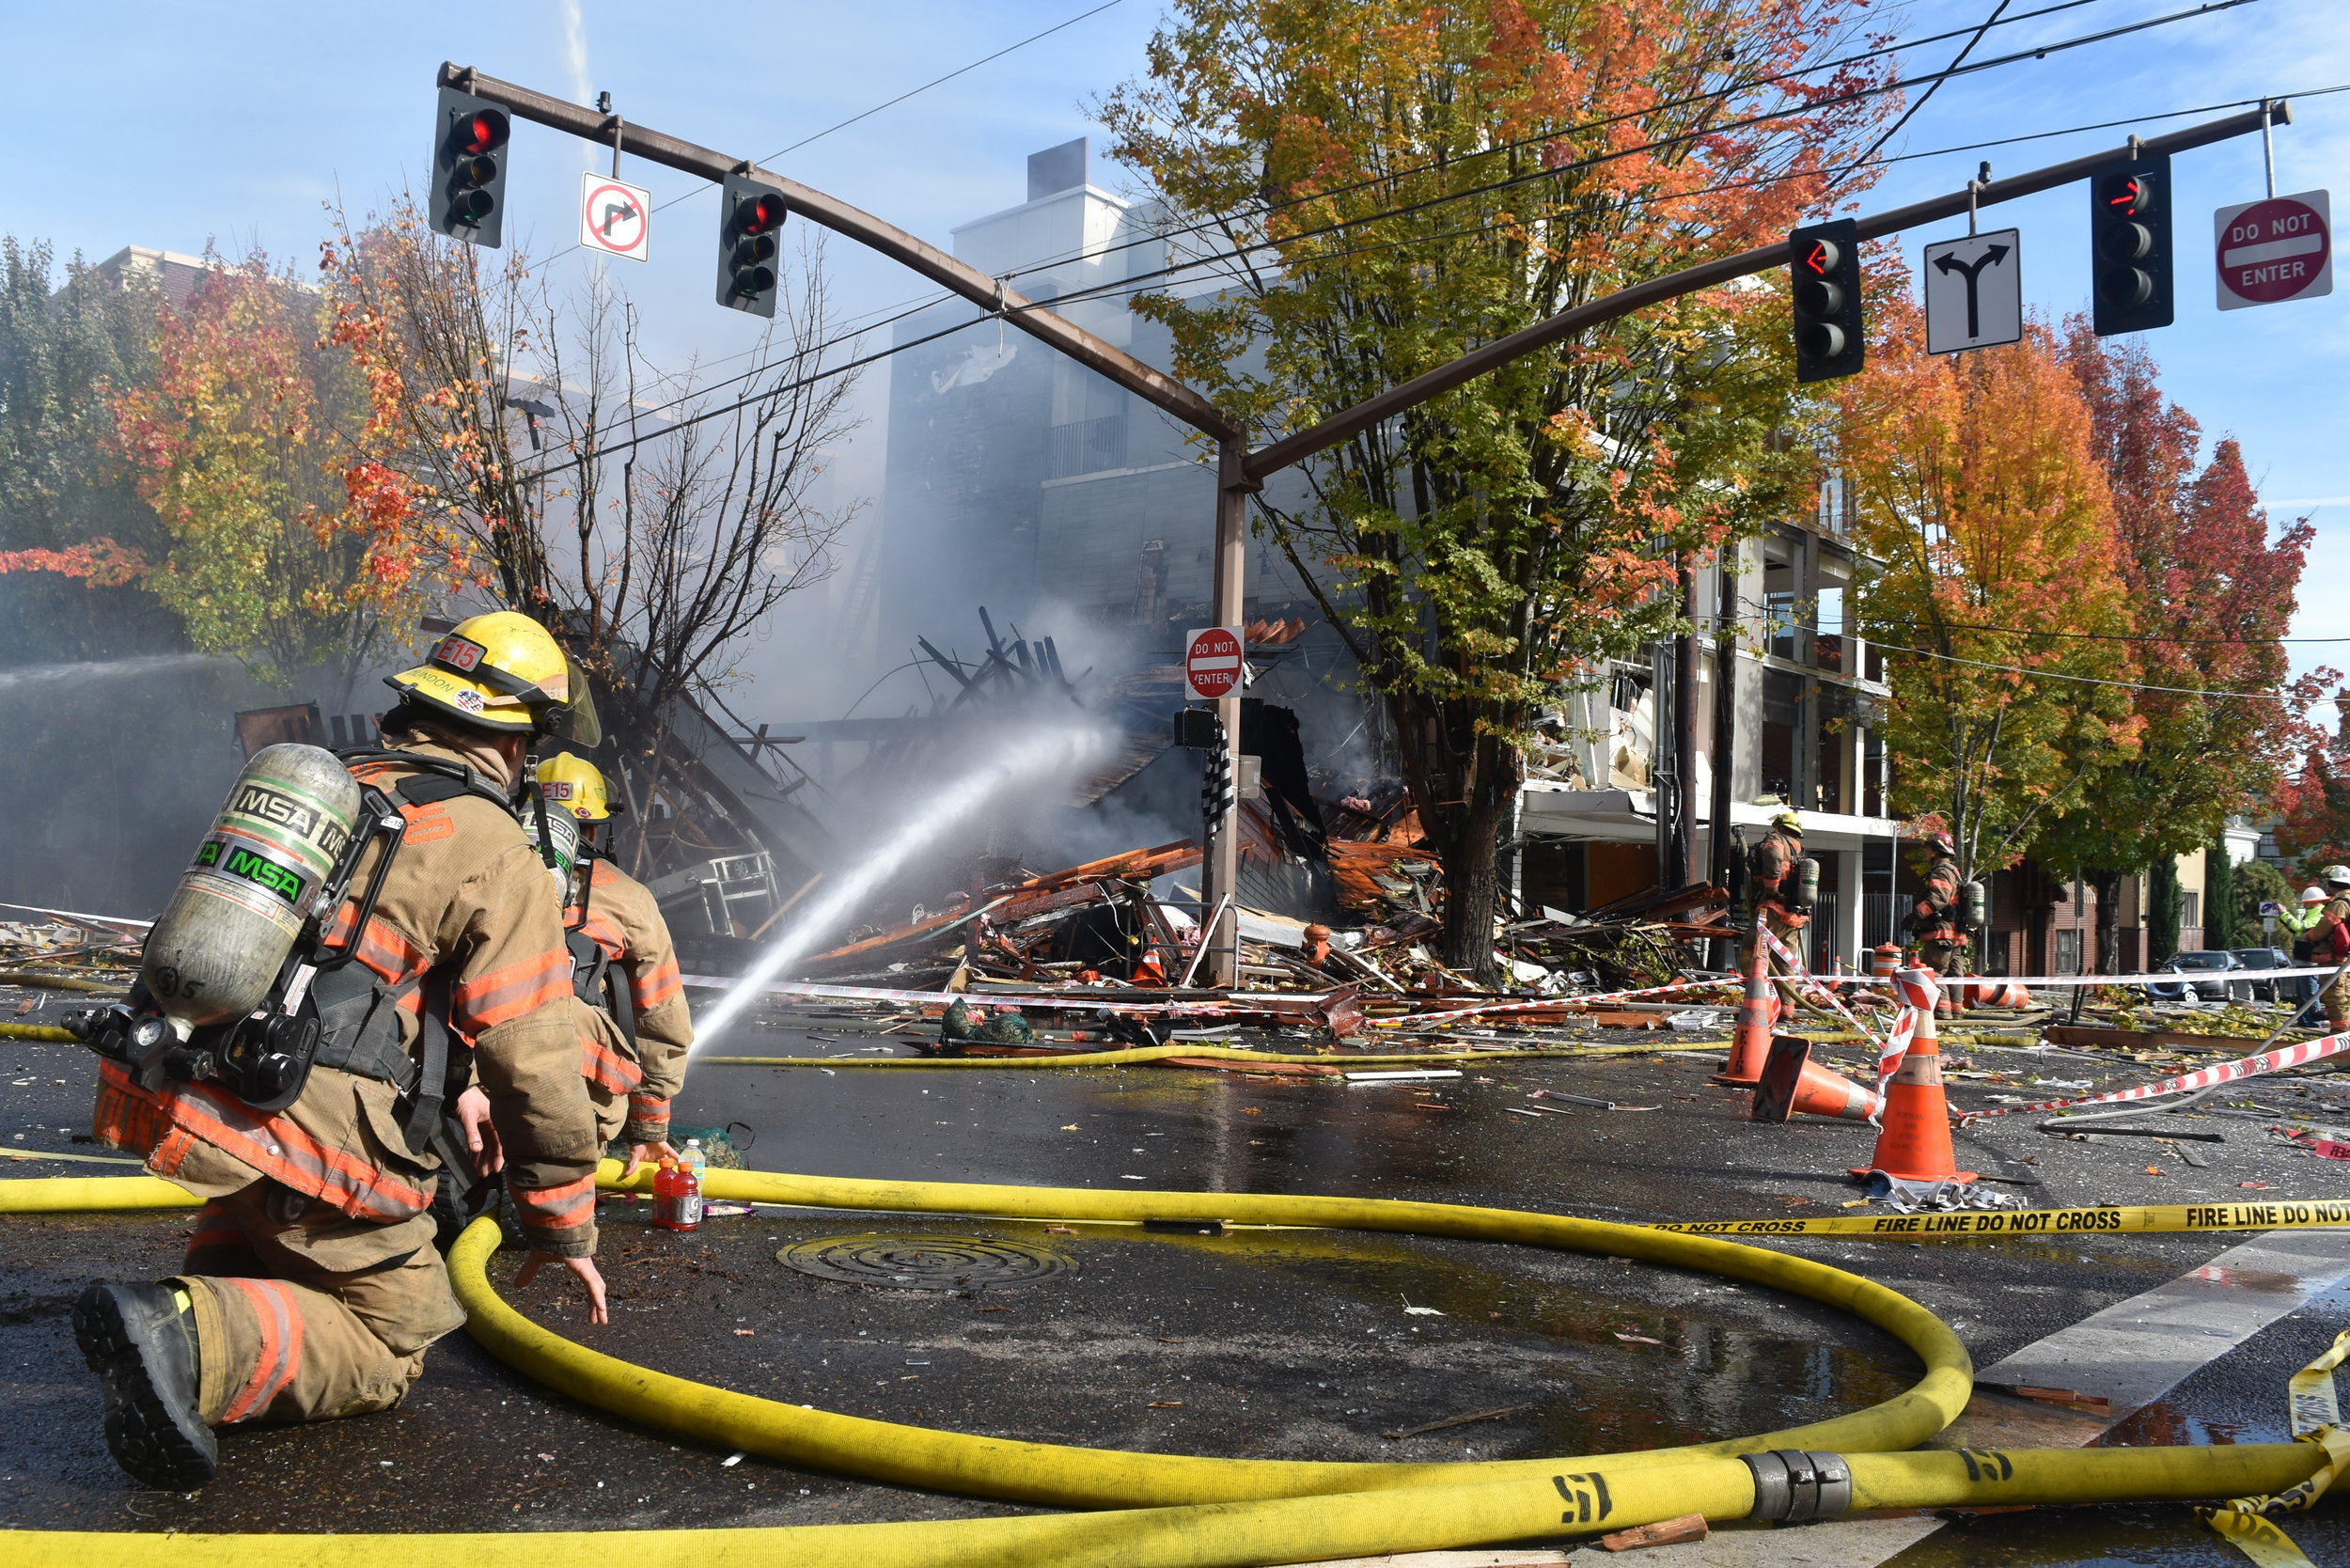 """Portland Mercury - """"A Large Explosion Leveled a Building in NW Portland Wednesday Morning"""""""